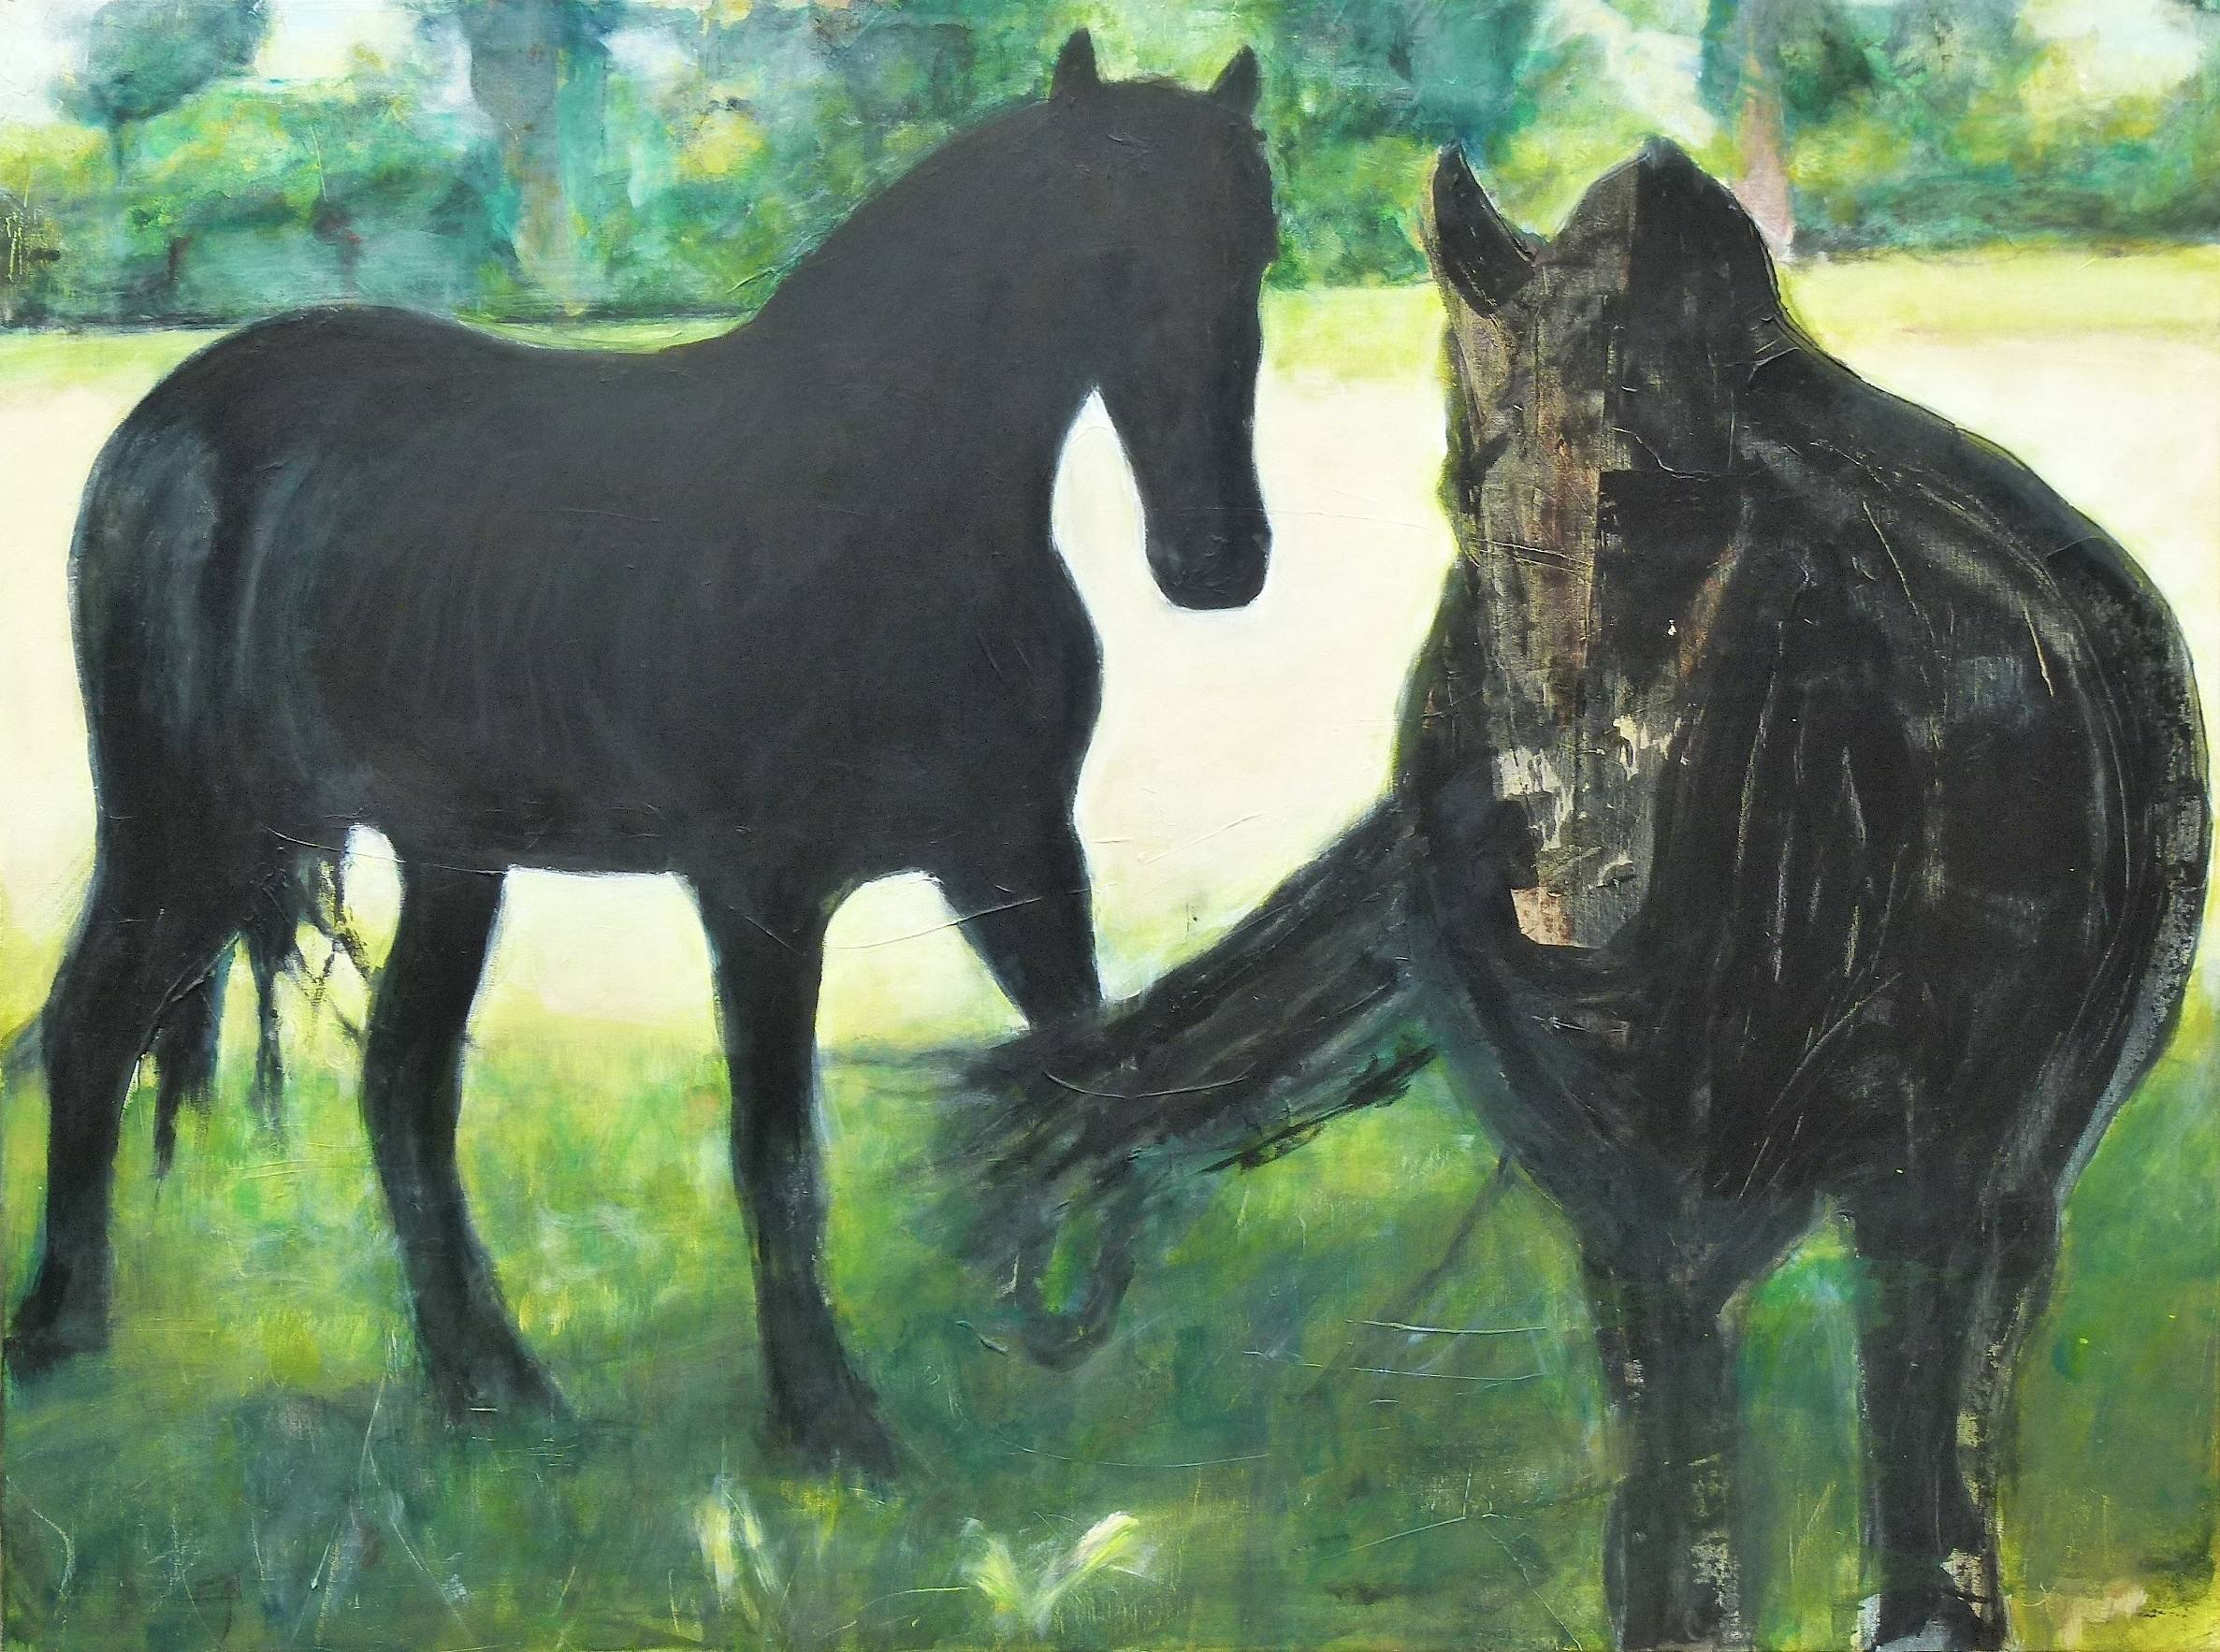 2014. Out of focus,  paarden Oud Avereest. Mixed media.  120x160 cm.